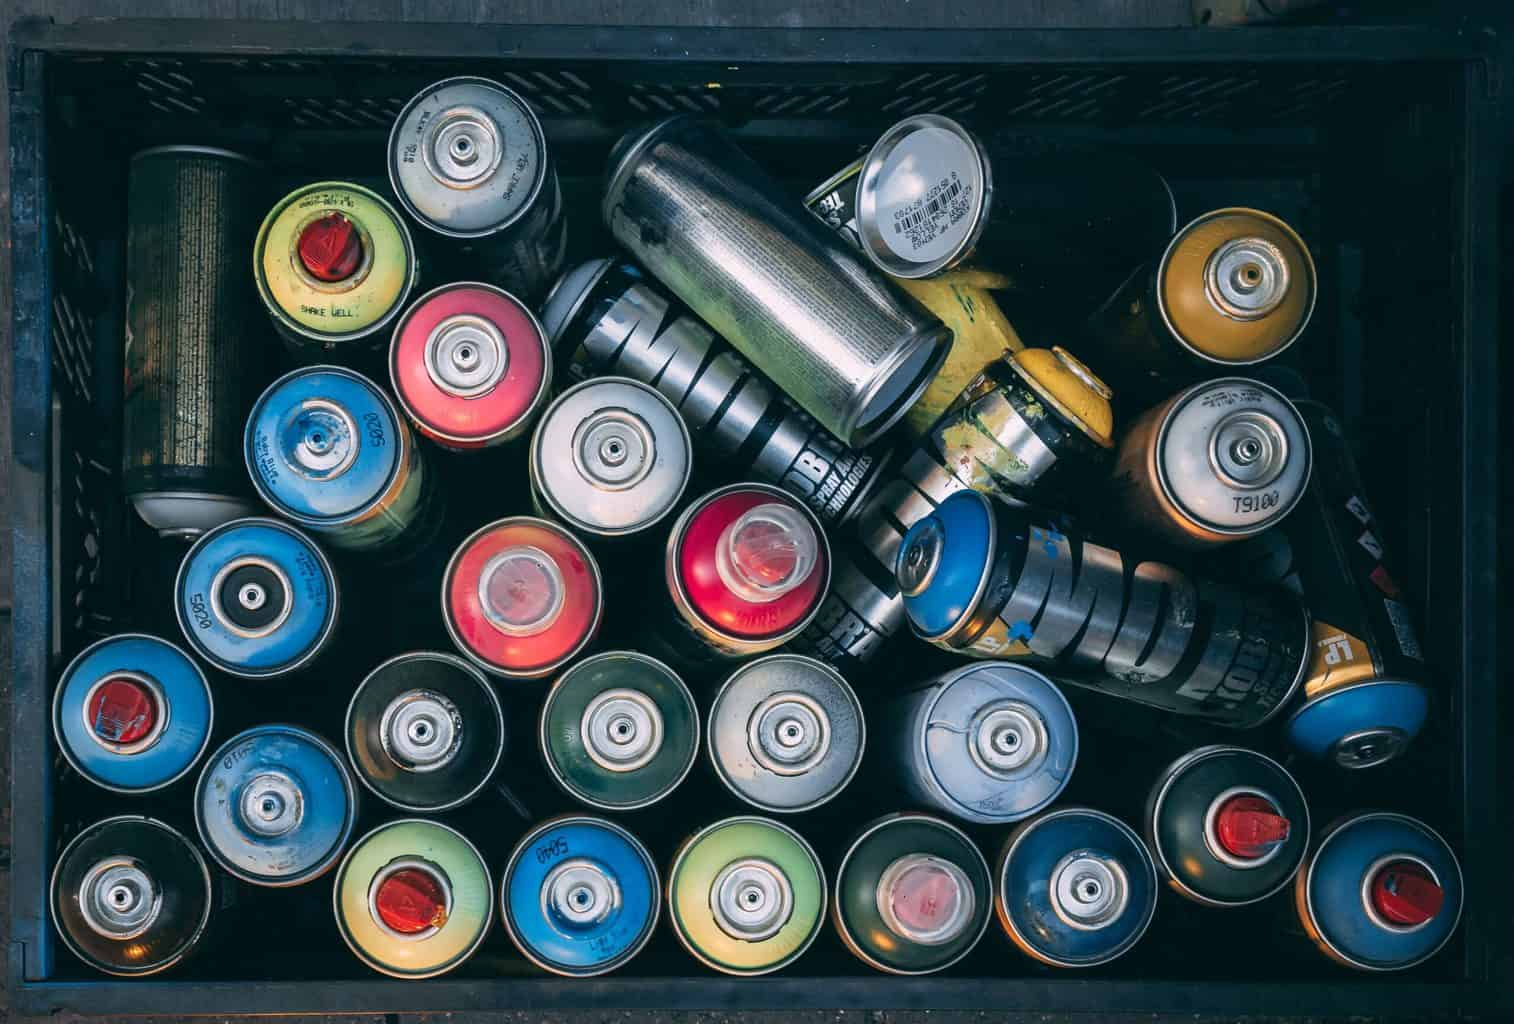 Top view of spray paint cans stacked togehter